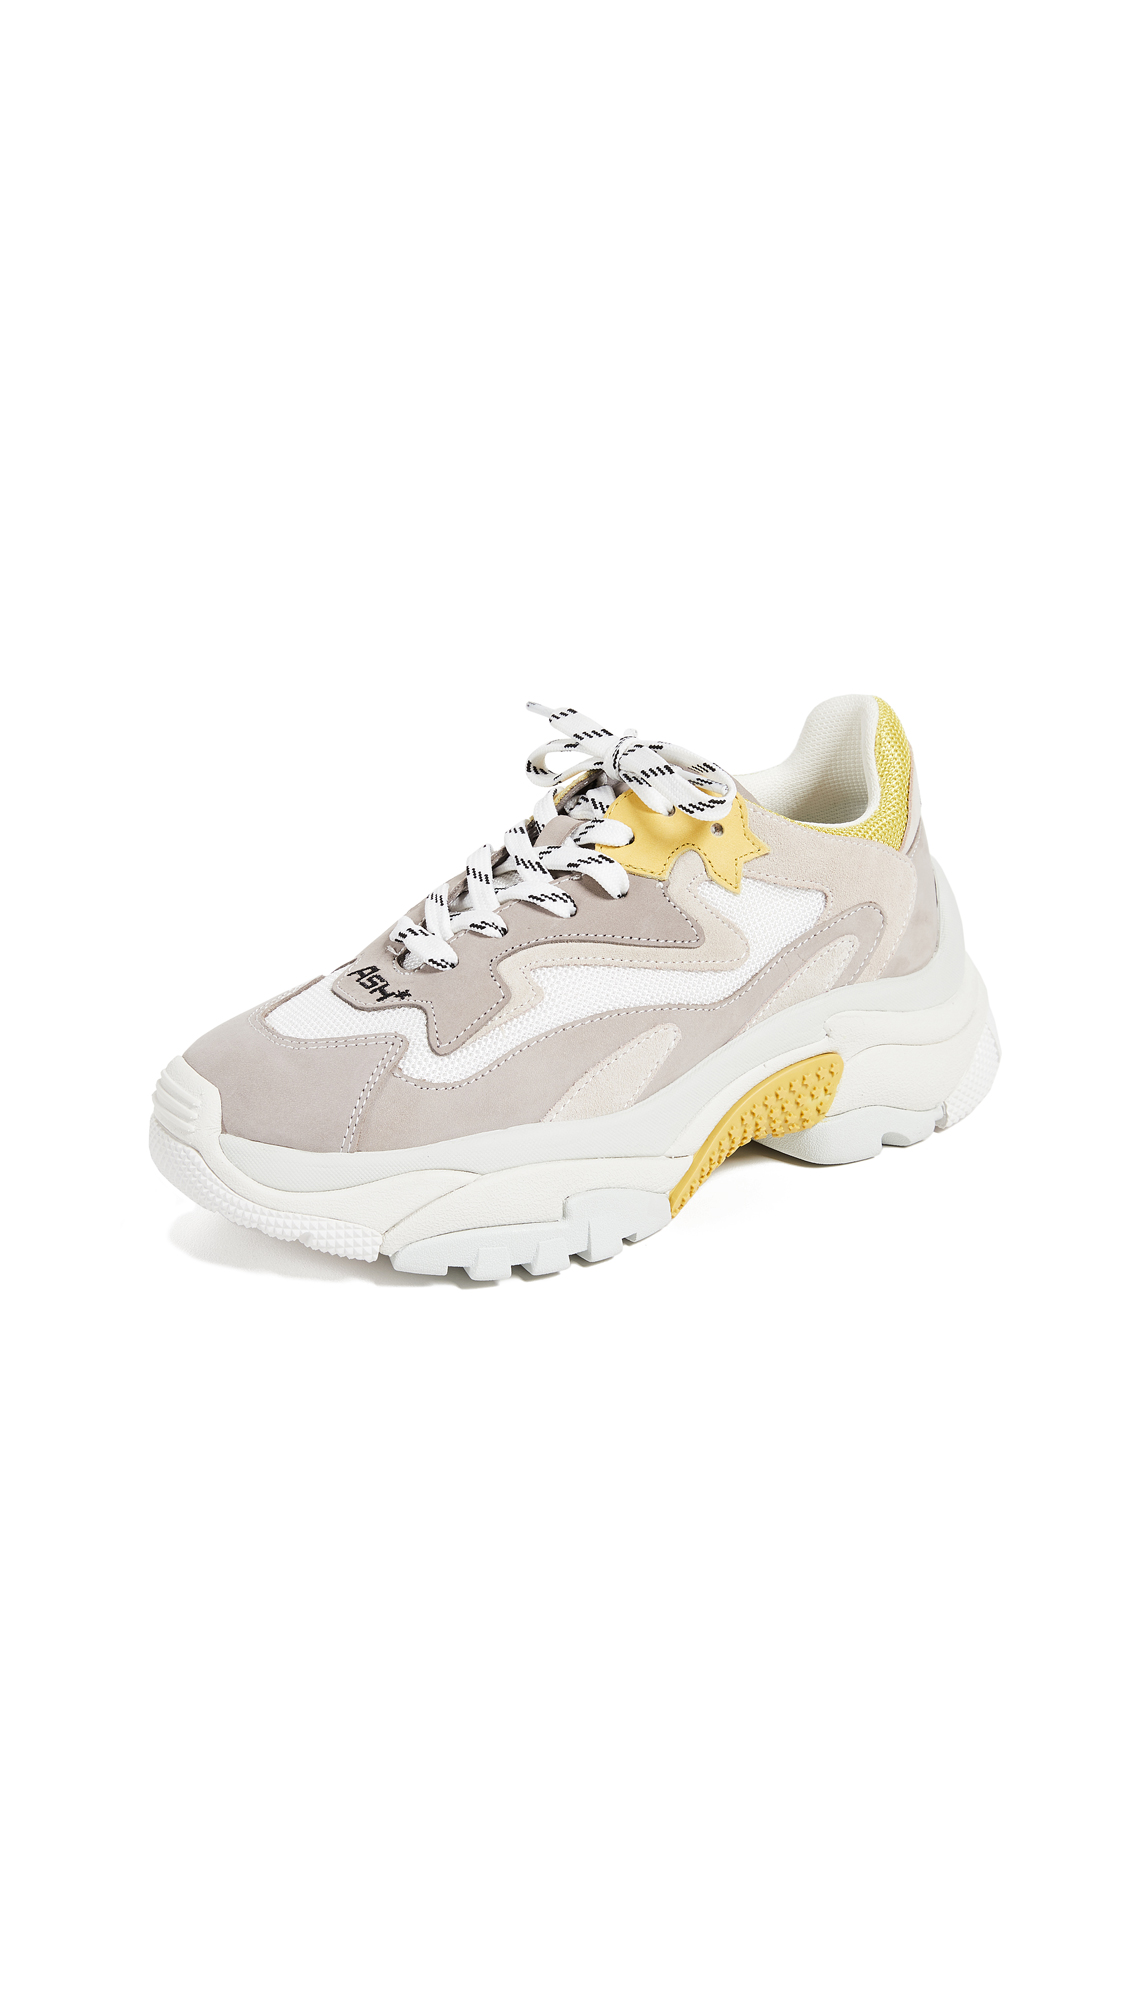 Ash Addict Trainers - Grey/Off White/Yellow/White